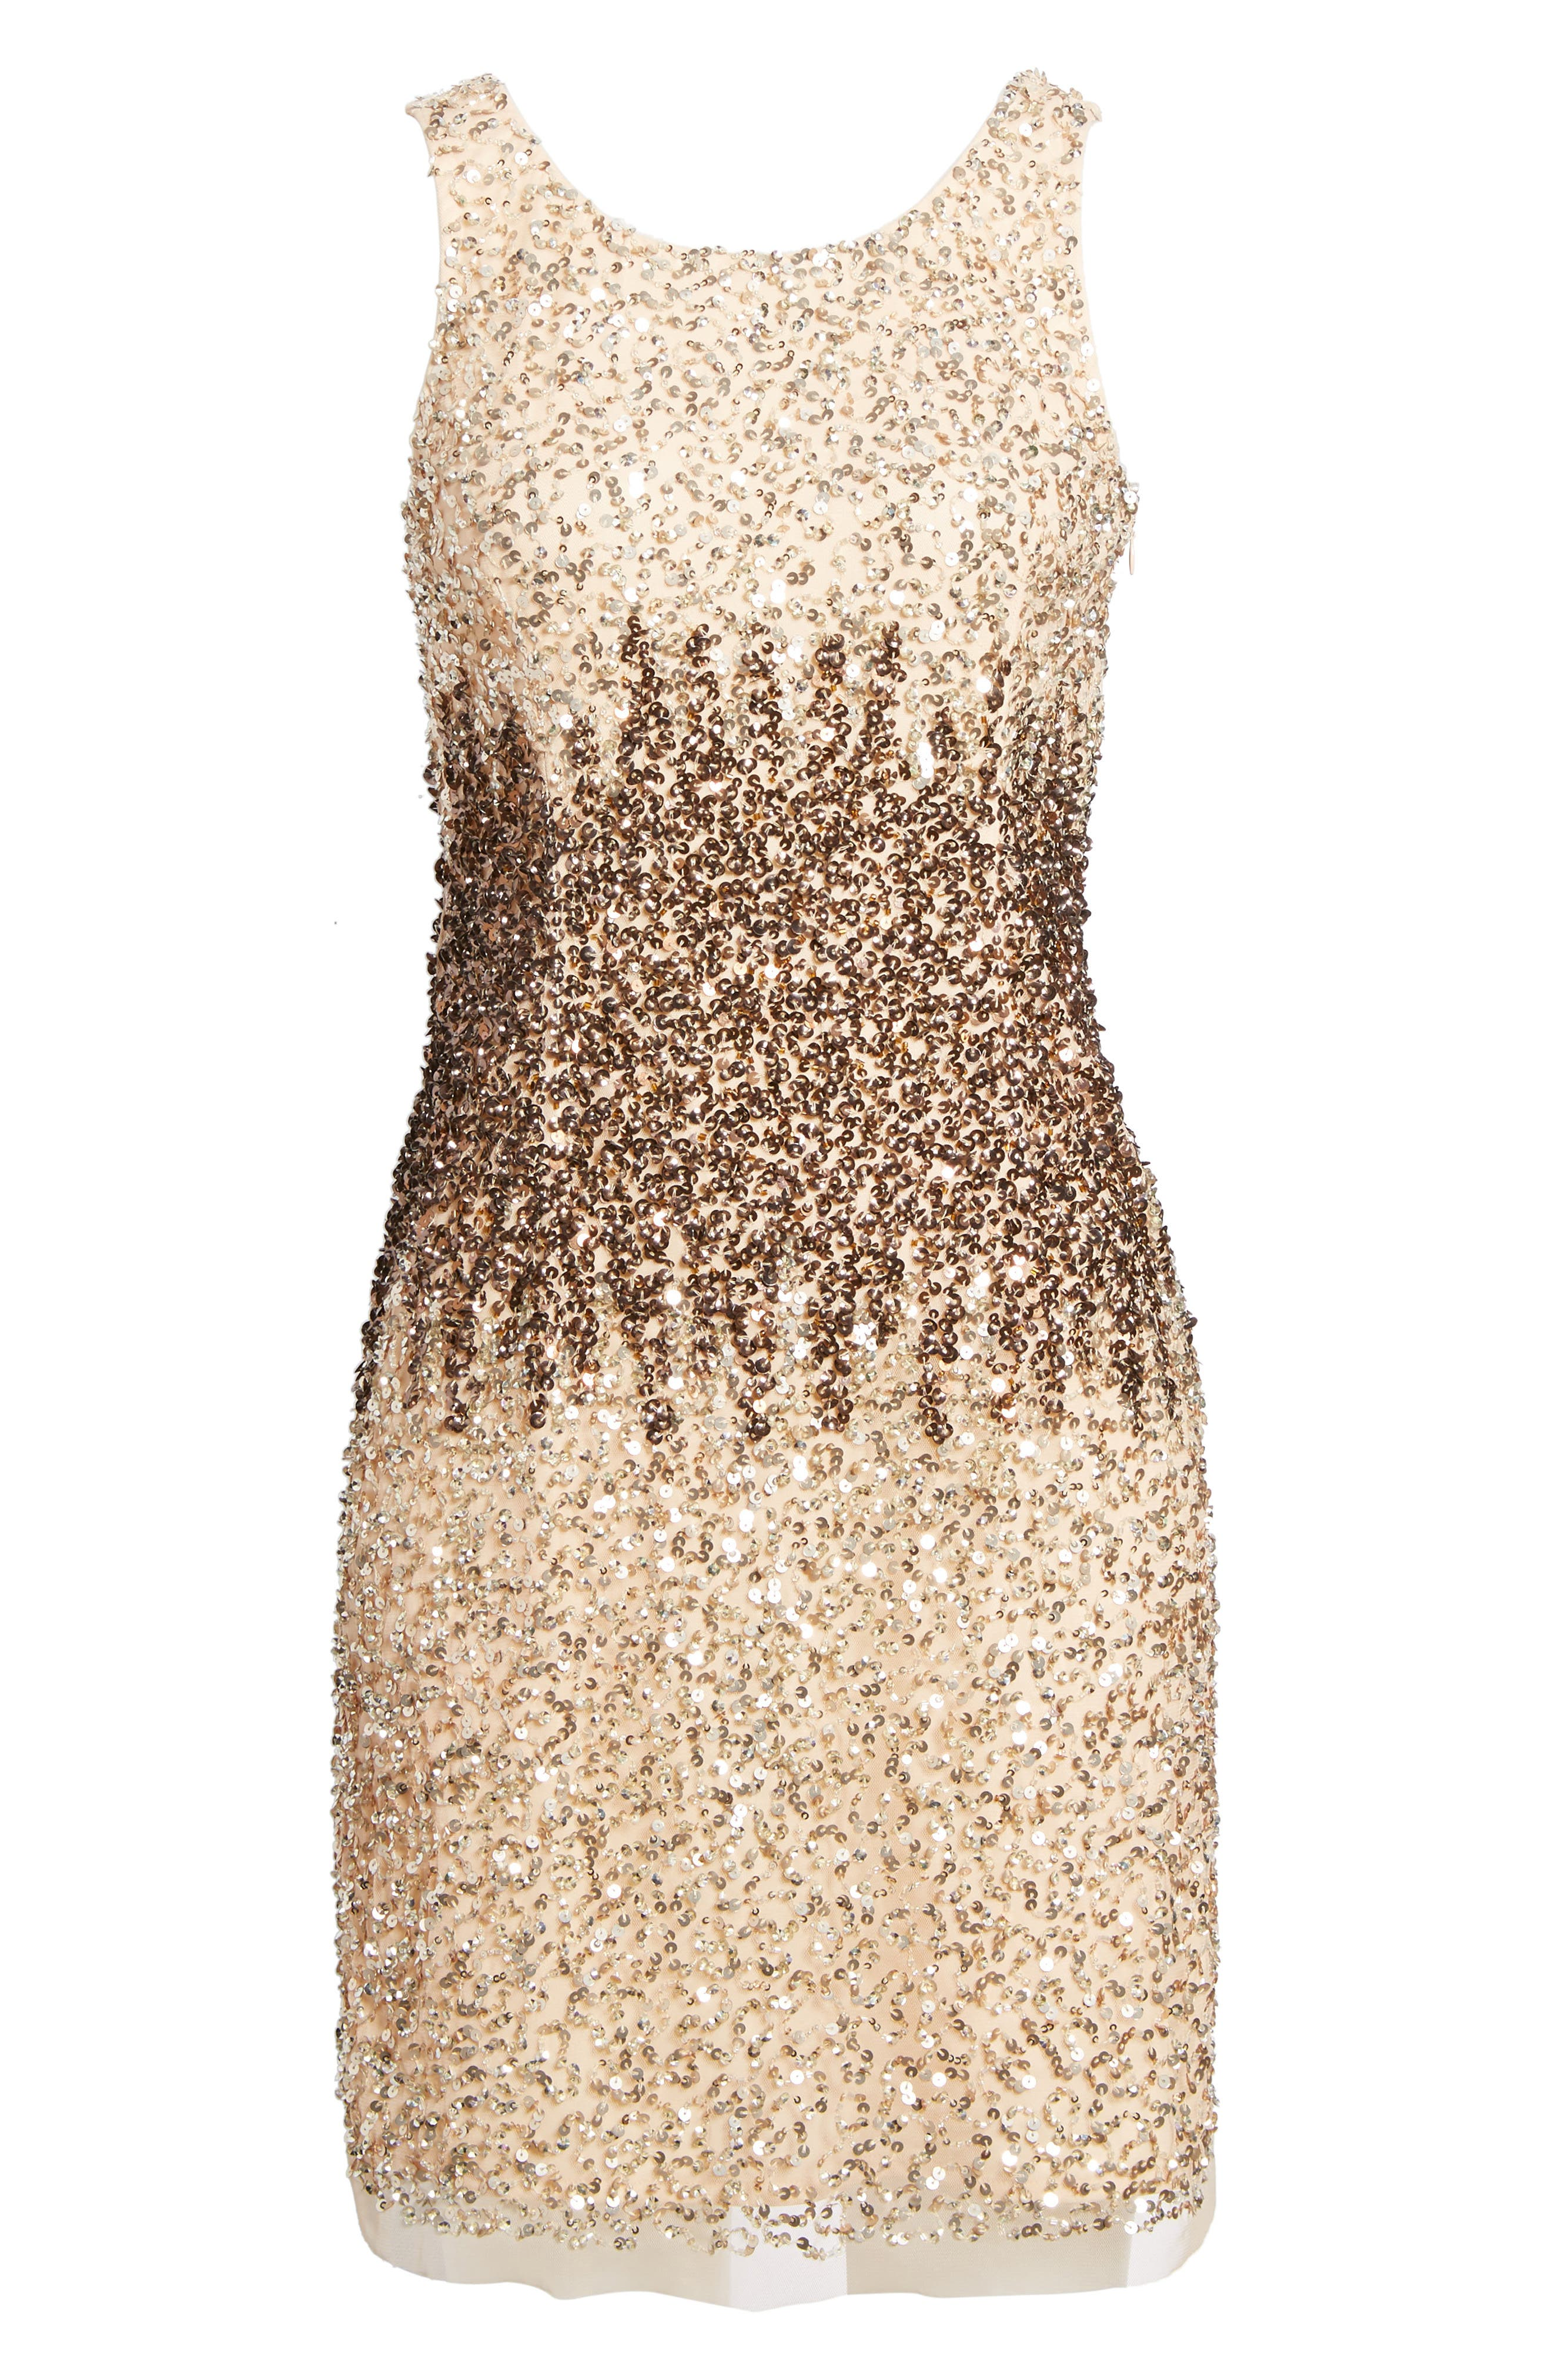 Sequins and Champagne Dress,                             Alternate thumbnail 6, color,                             Beige